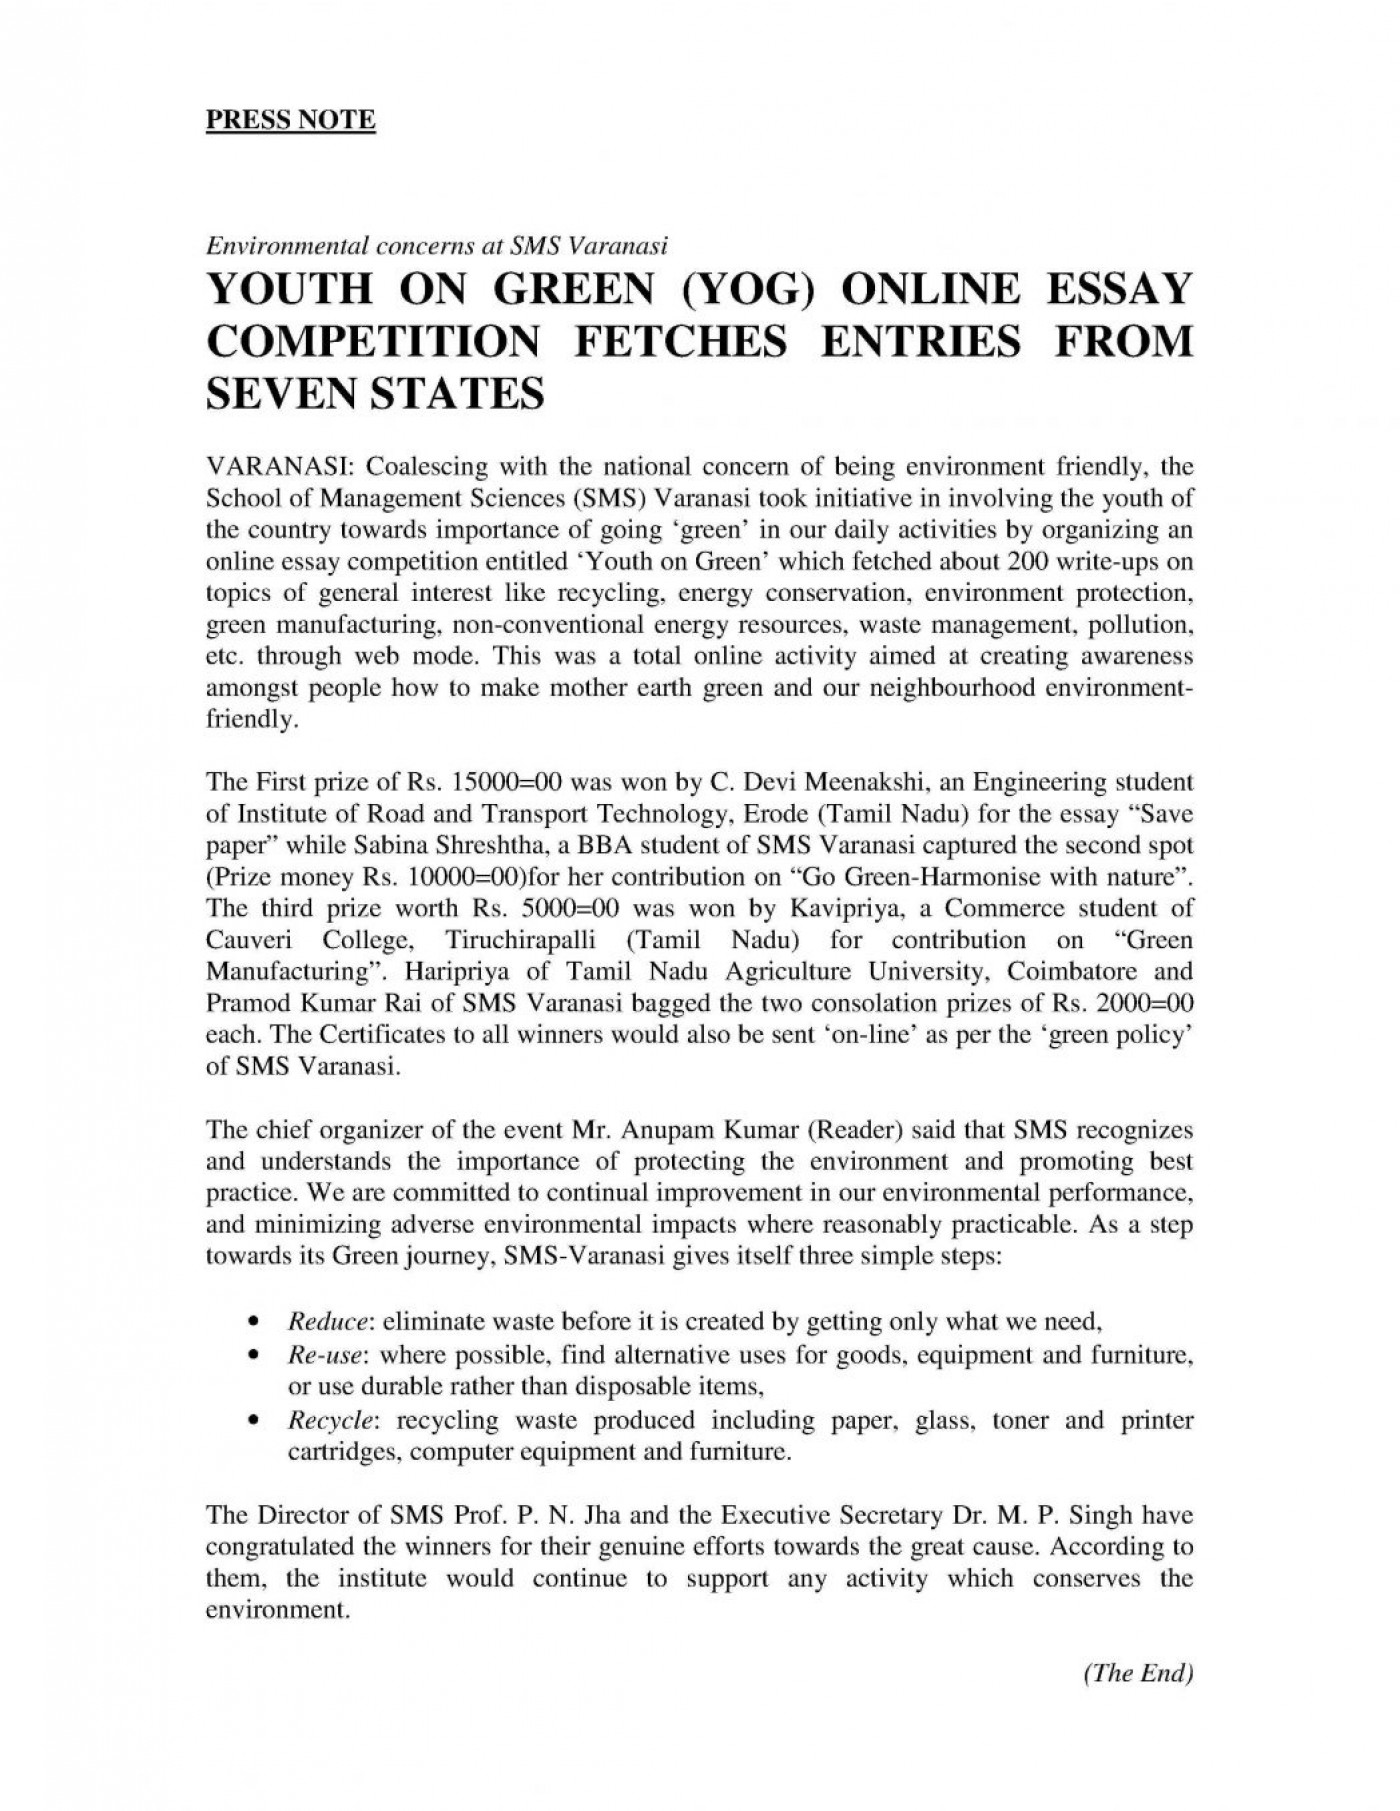 020 Best Essays For College Essay On Good Habits How Tot Application Online Yog Press Re About Yourself Examples Your Background Failure Prompt Off Hook 1048x1356 Example Amazing To Start An Write A Paper Climate Change Expository With Quote Format 1400